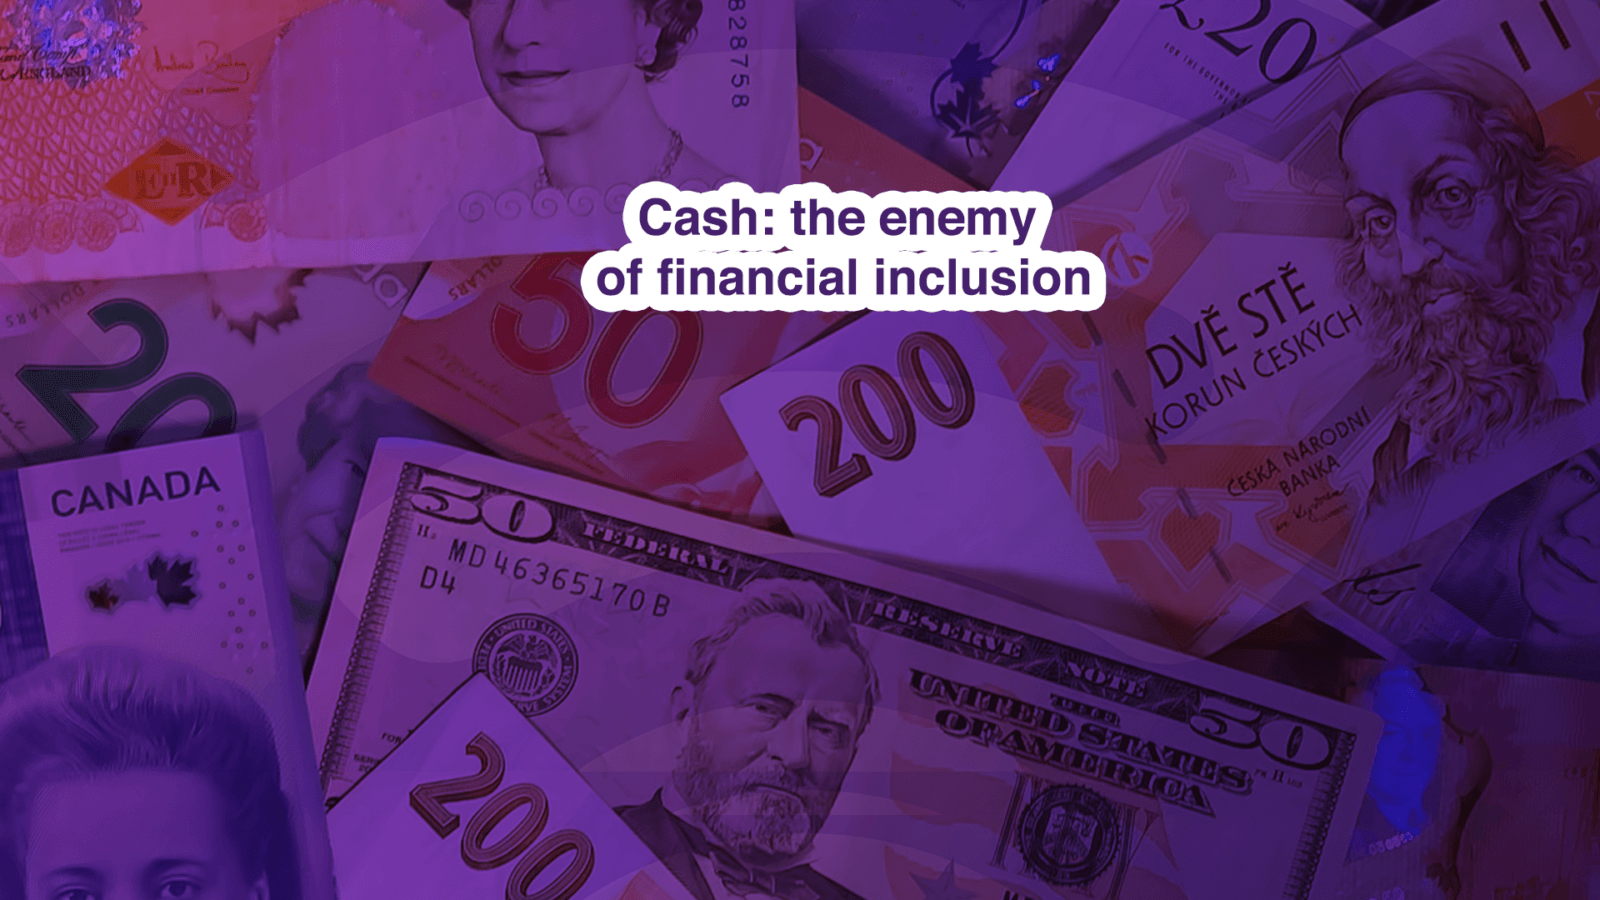 Cash: the enemy of financial inclusion